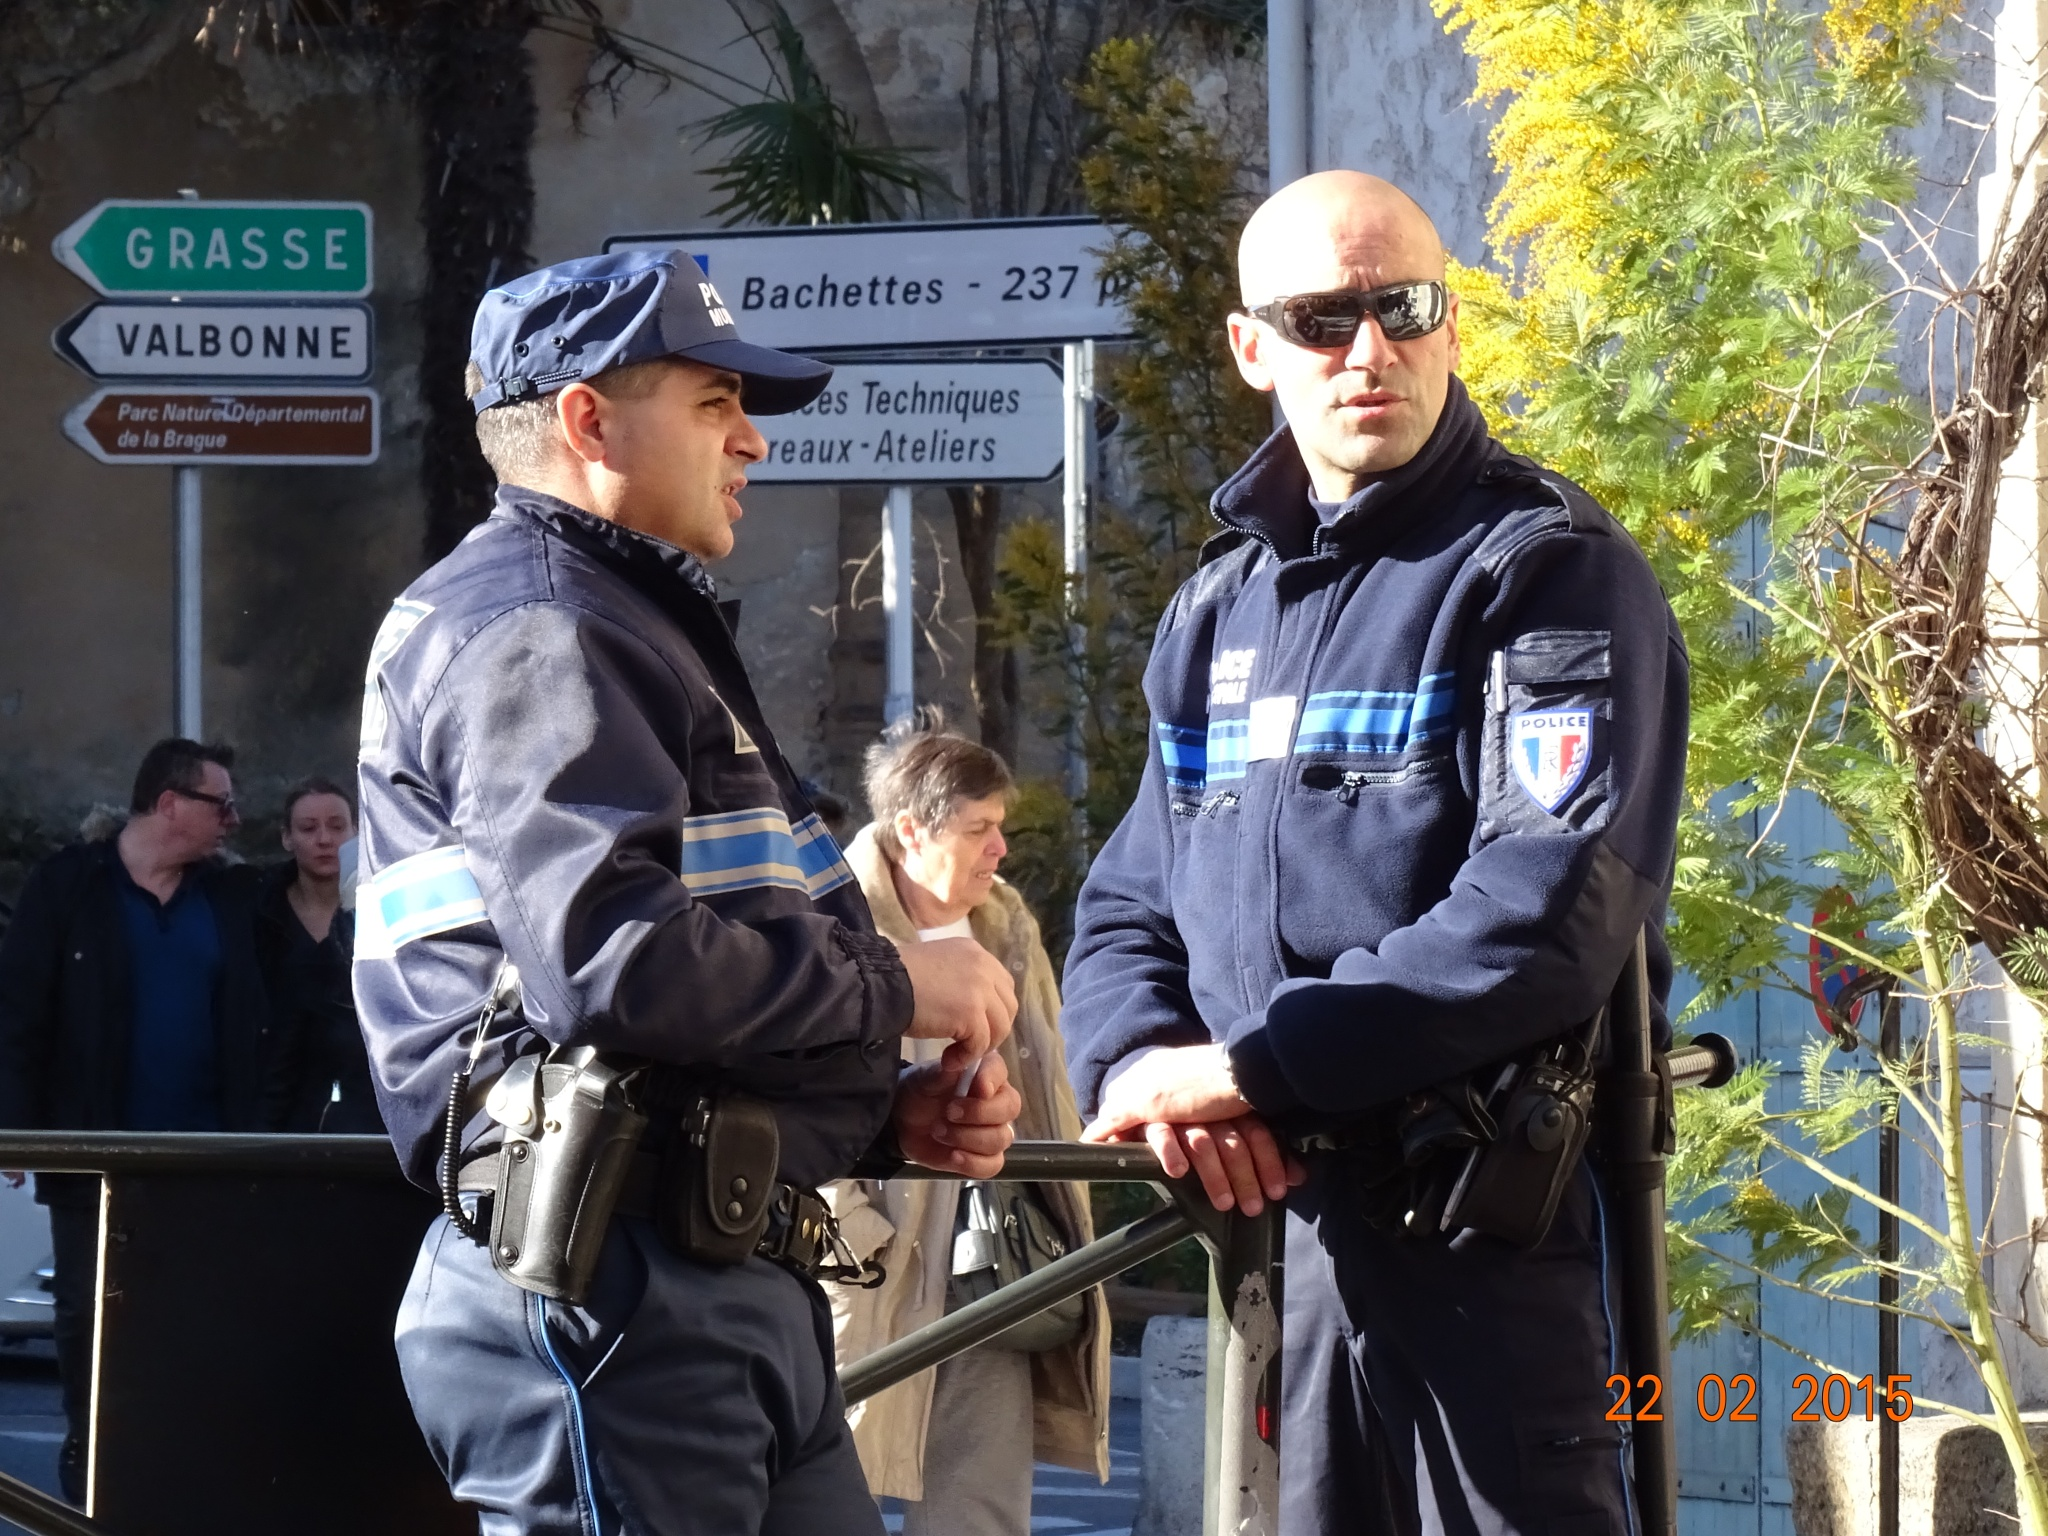 French Police by erol.antz